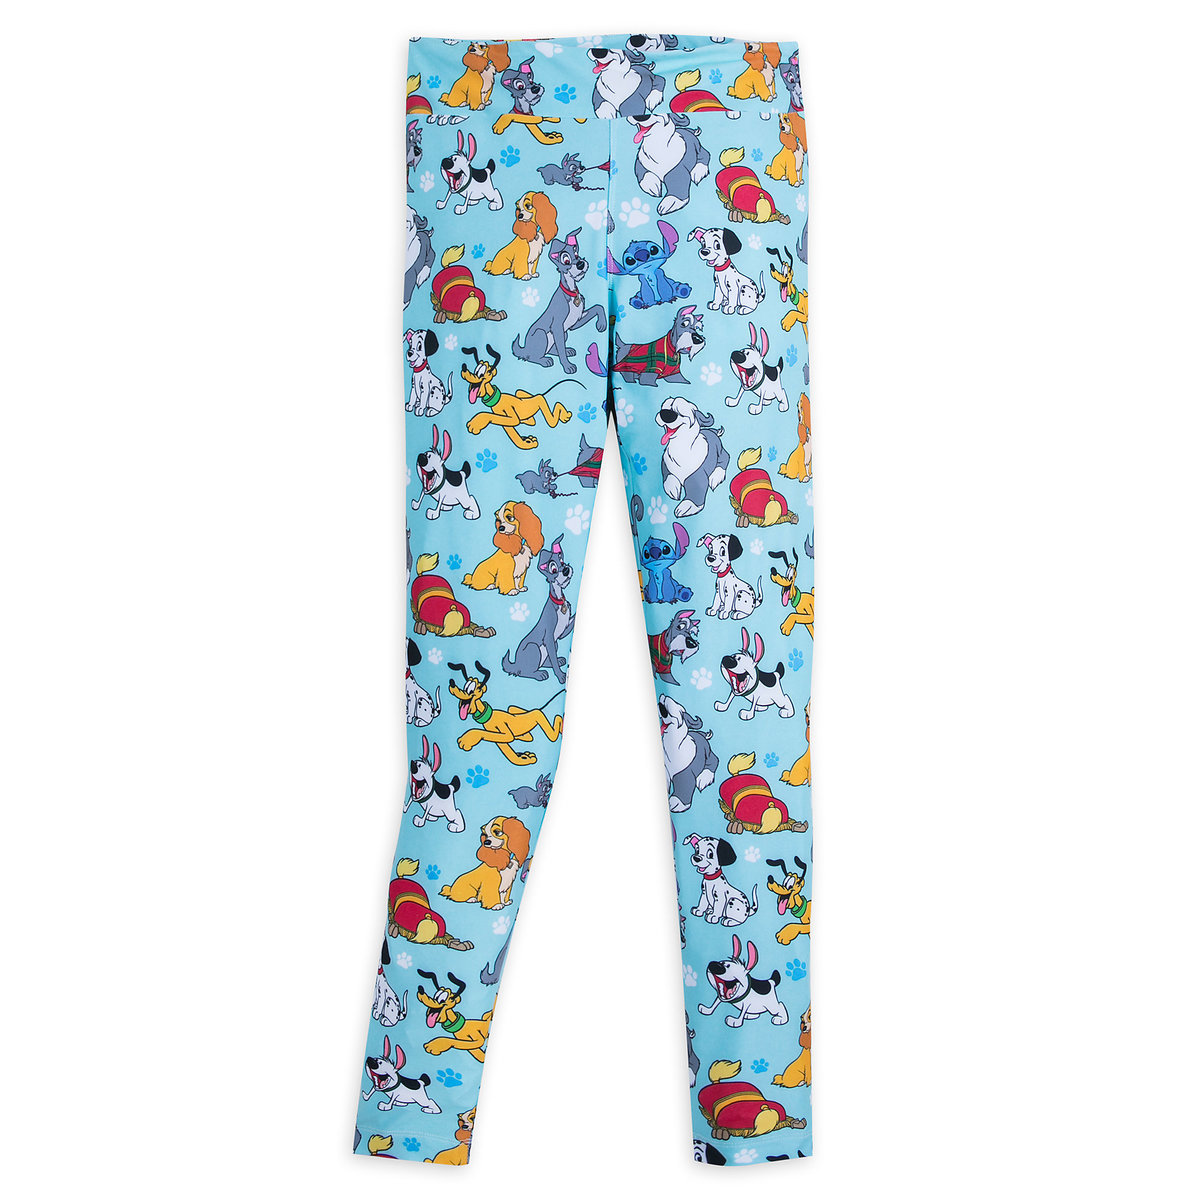 c660a89812ce8b Product Image of Disney Dogs Leggings for Women # 1